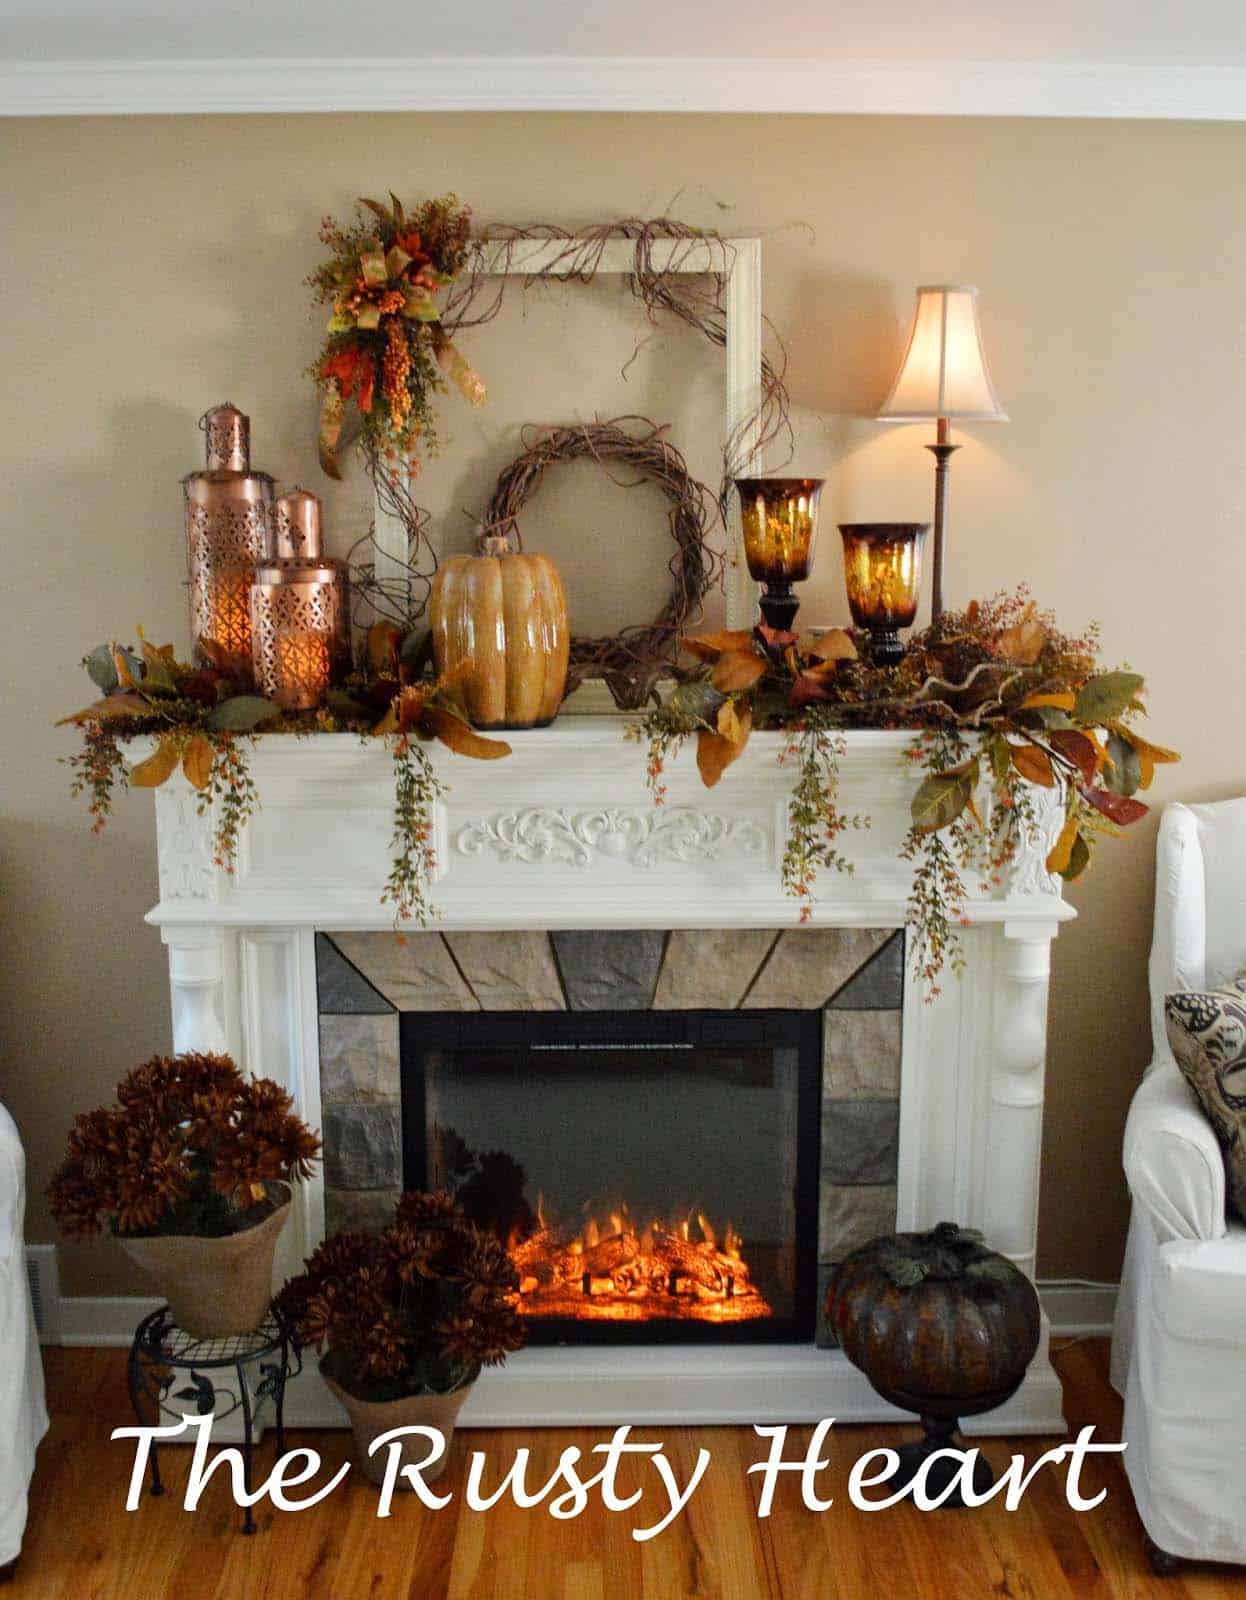 Fall Decor For Fireplace  30 Amazing fall decorating ideas for your fireplace mantel